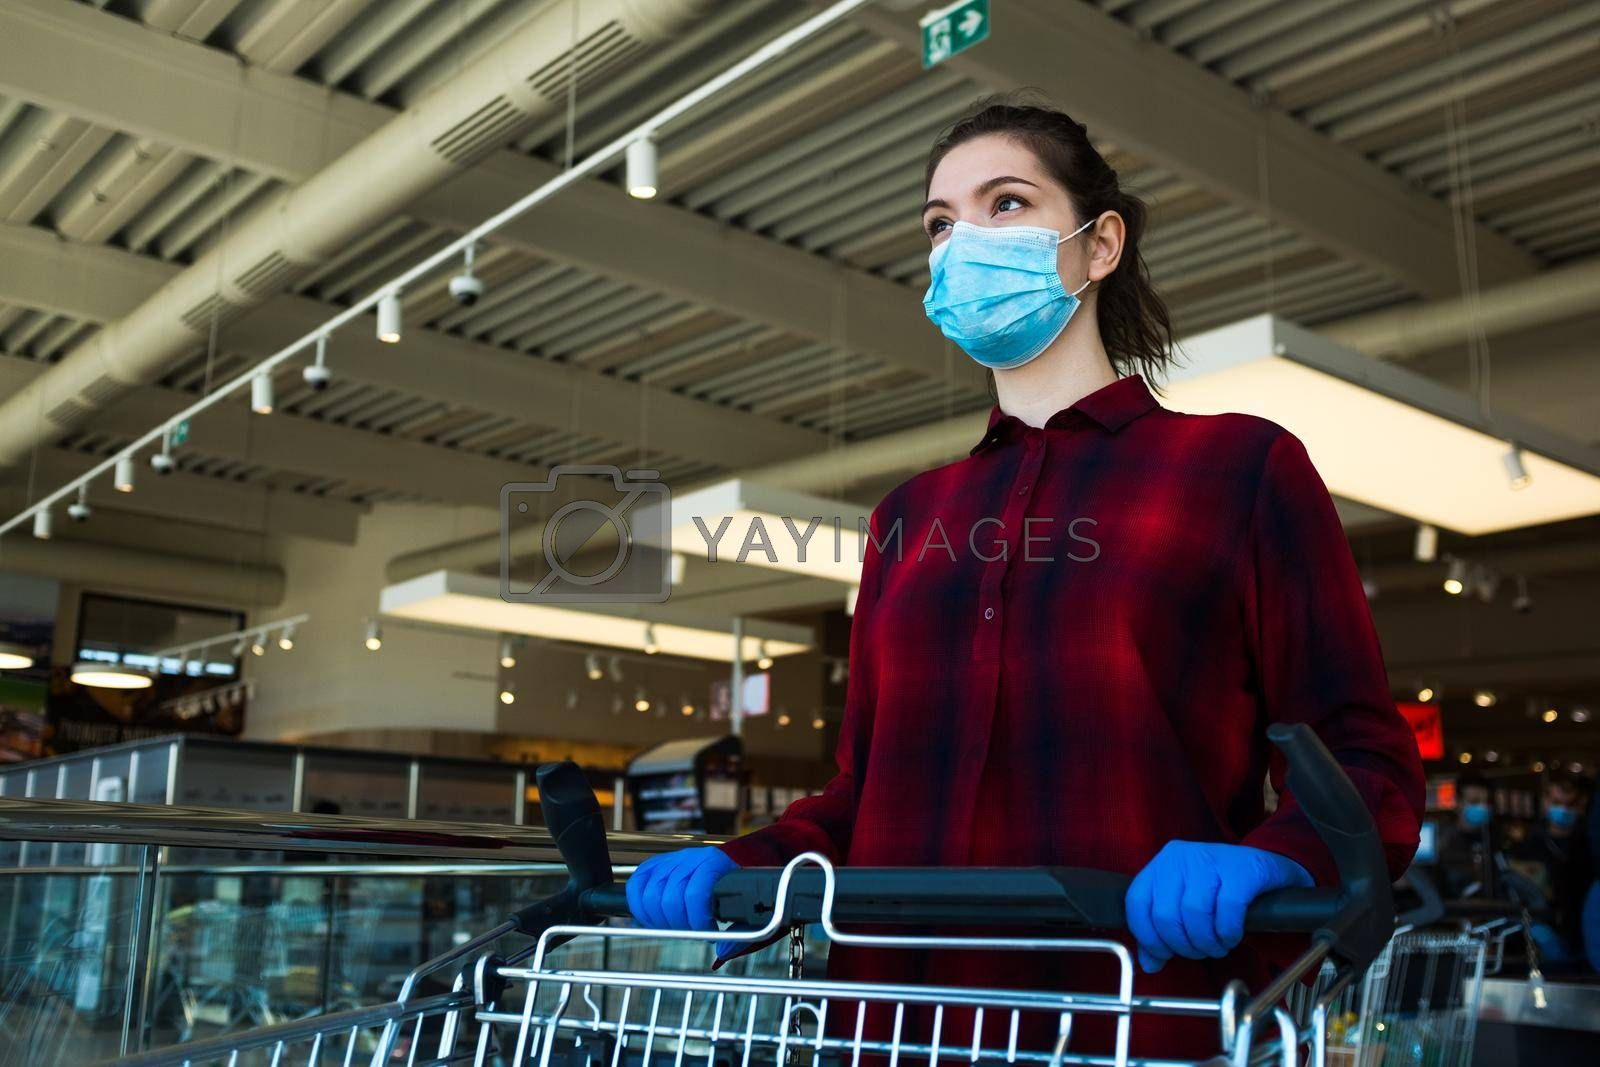 Young caucasian woman pushing shopping cart in supermarket, wearing protective blue surgical face mask and latex gloves, health and safety measurements in public due to Coronavirus COVID-19 pandemic